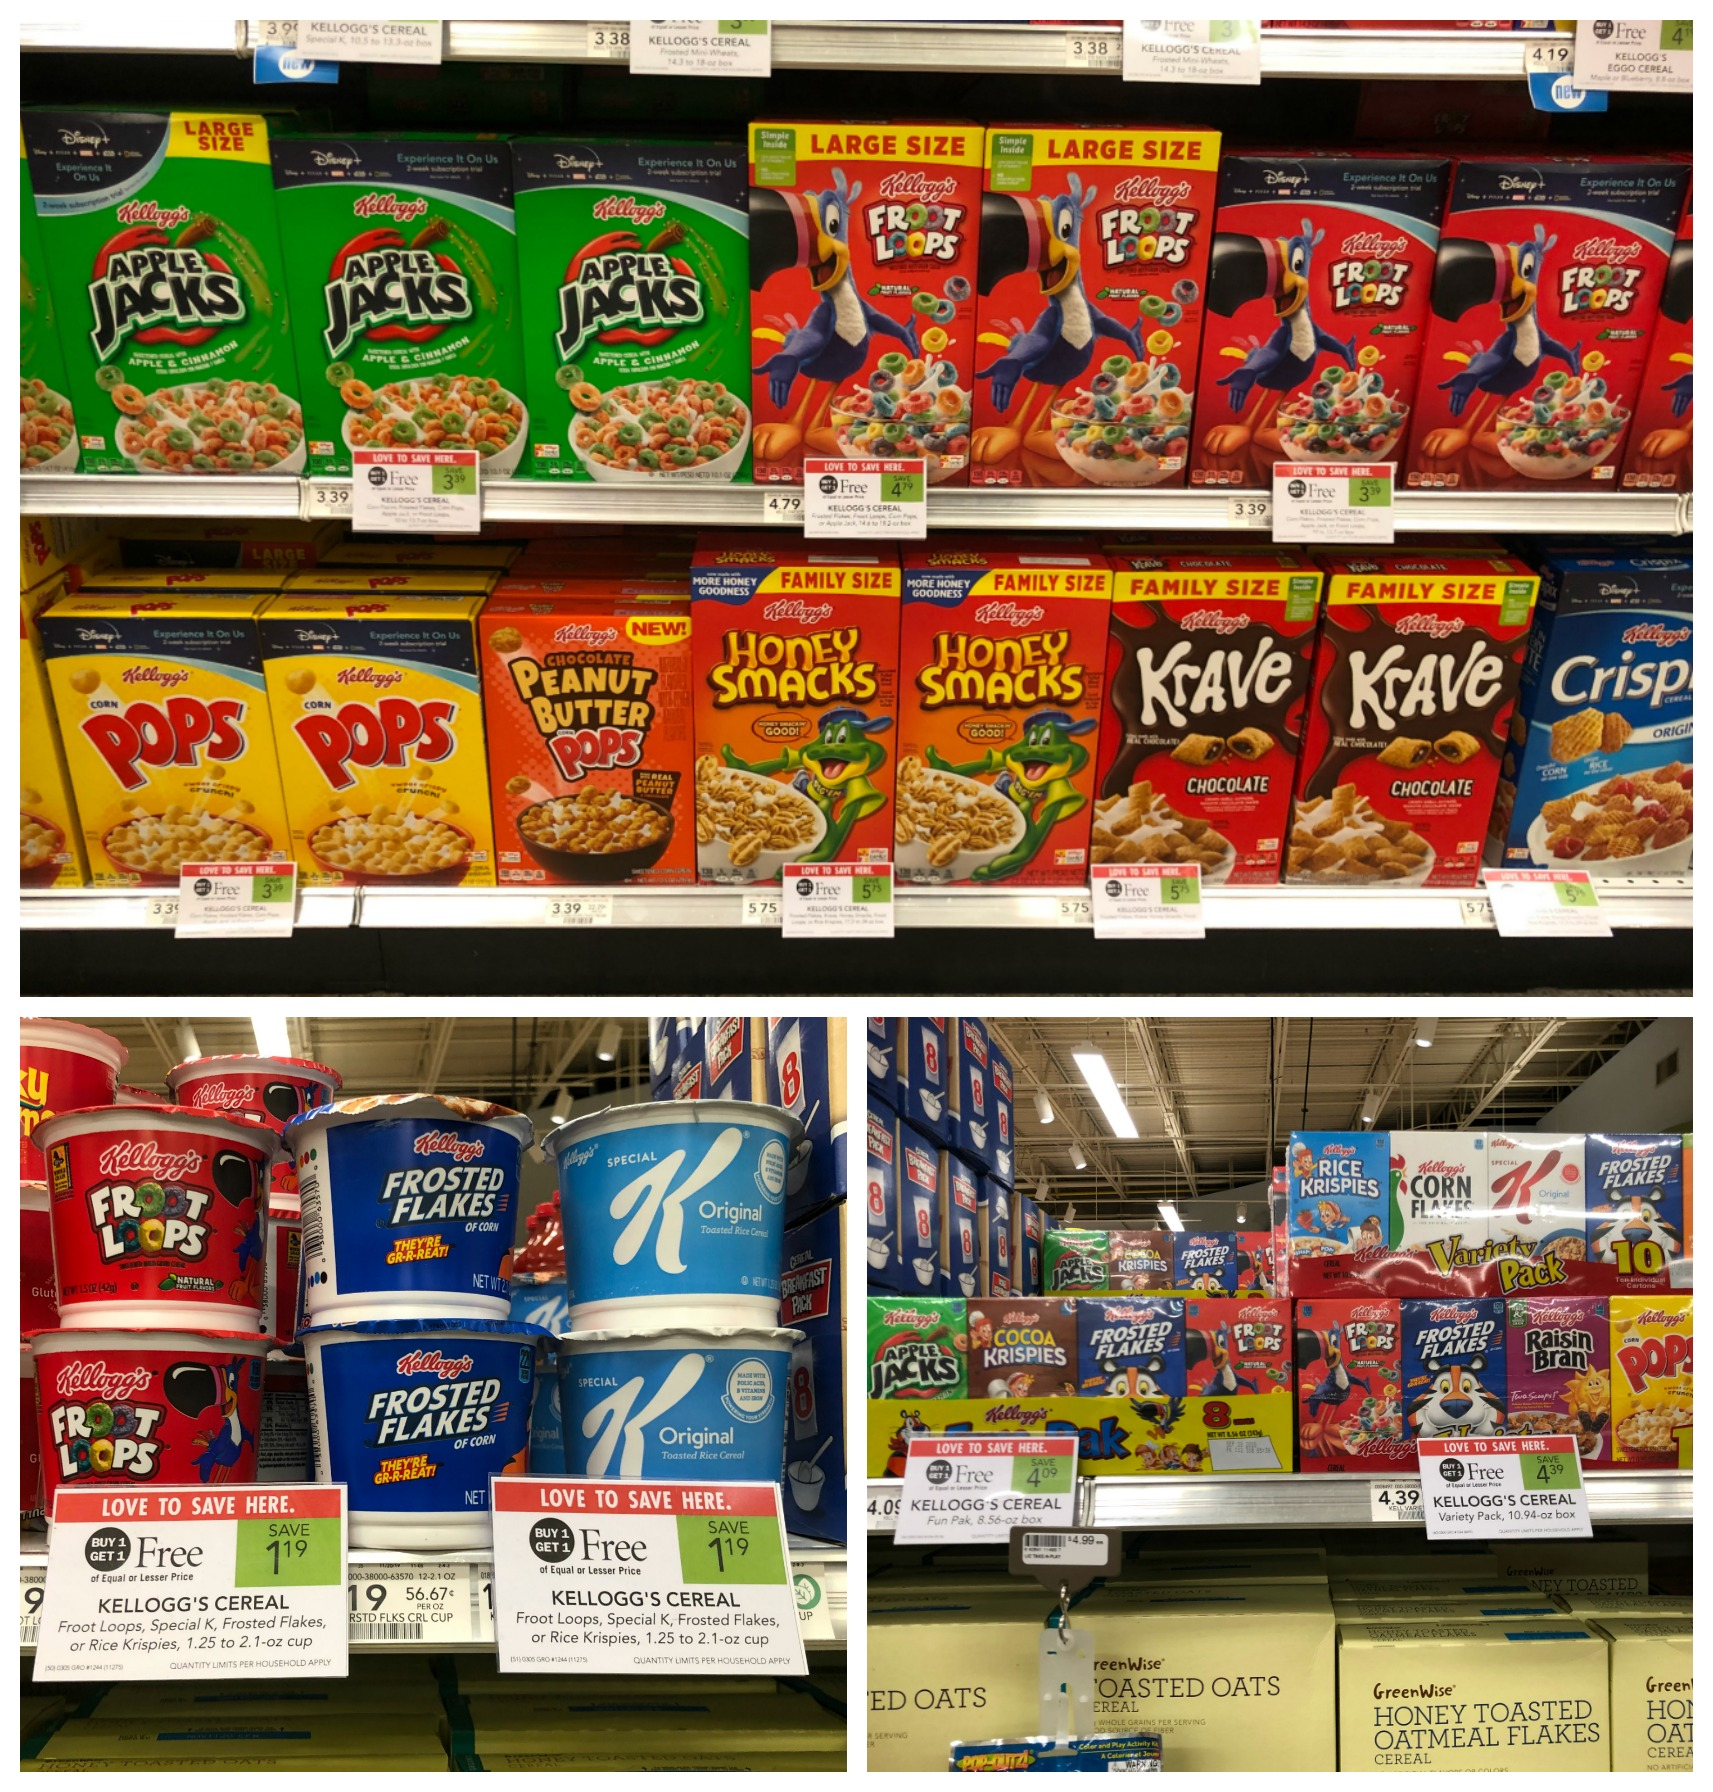 Big News!! All Kellogg's Cereals Are Buy One Get One FREE This Week At Publix! on I Heart Publix